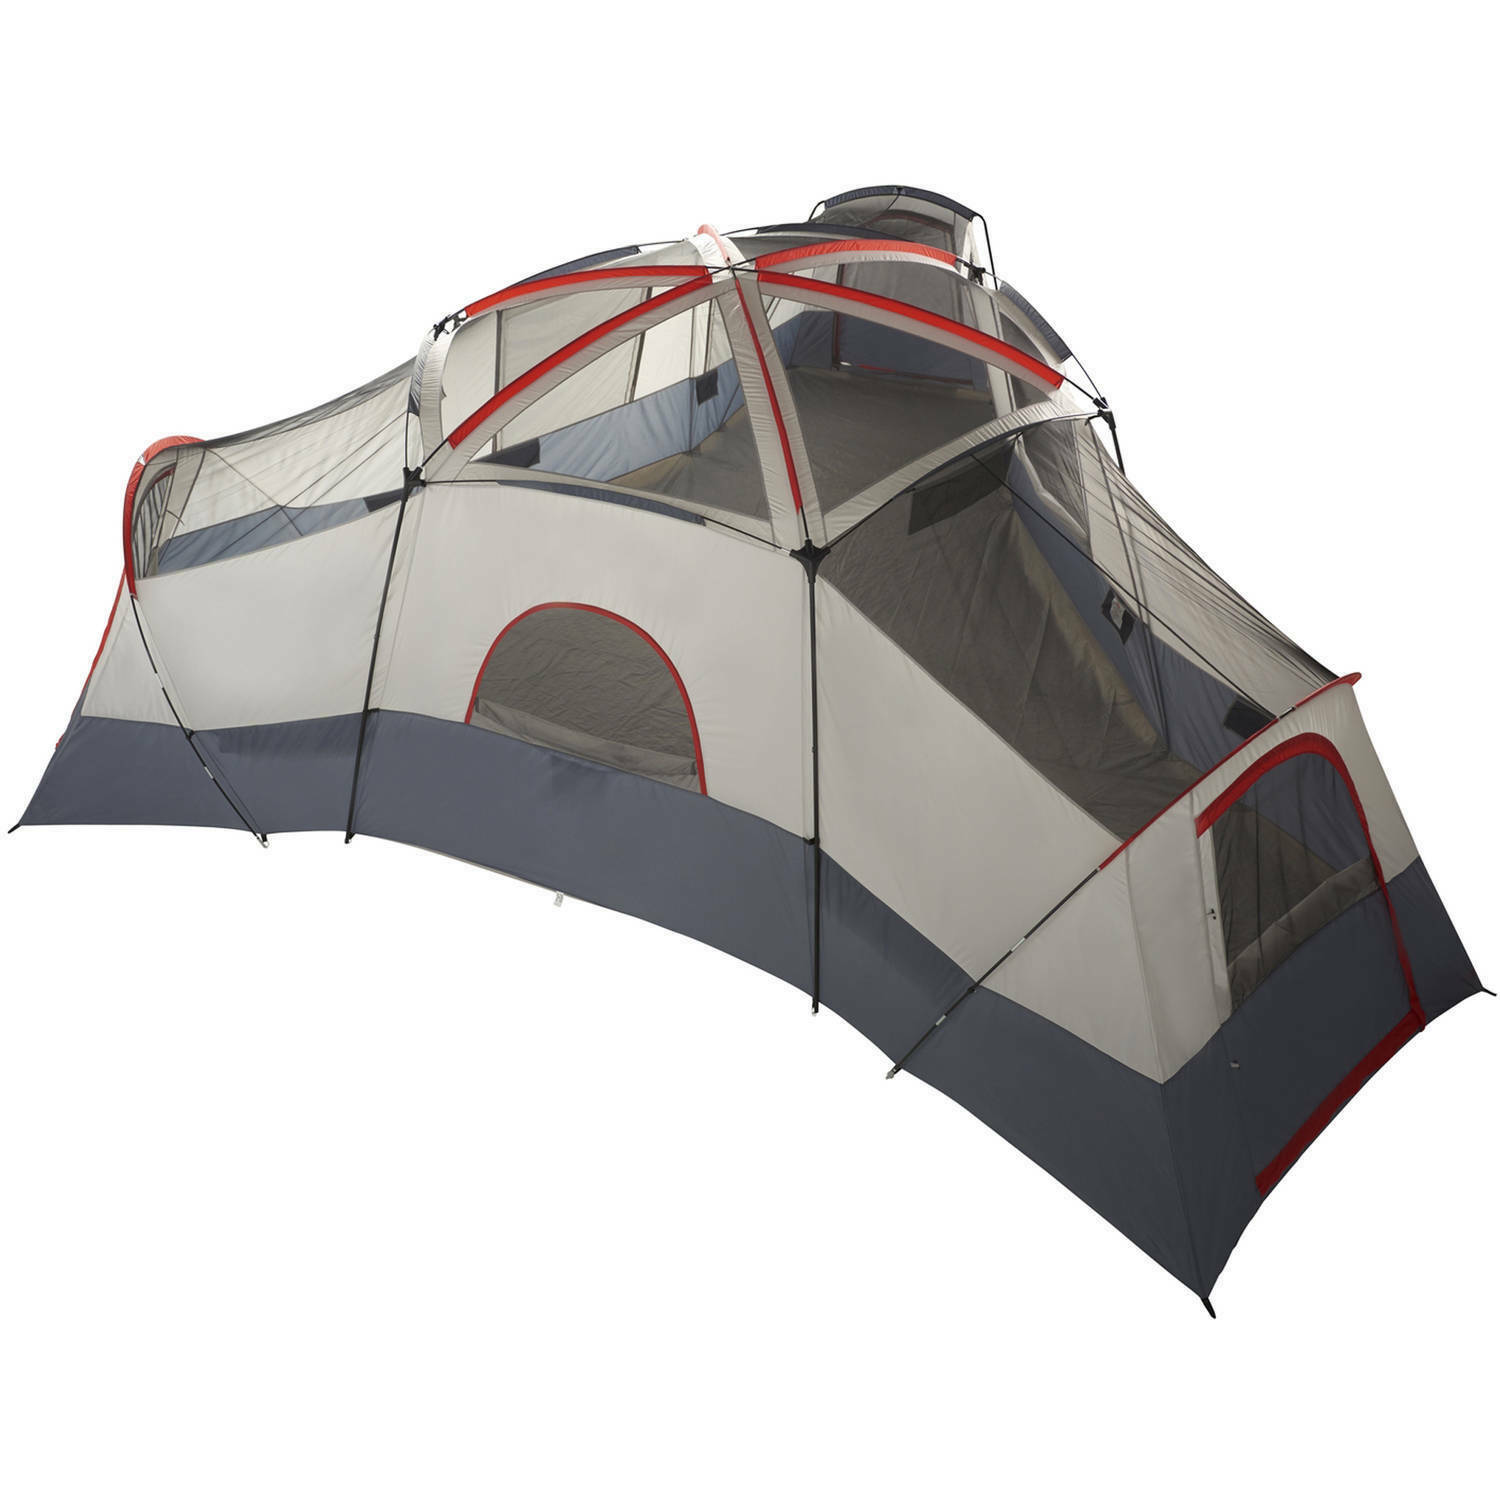 Details about Ozark Trail 20 Person 4 Room Cabin Tent with 4 Separate Entrances for Camping